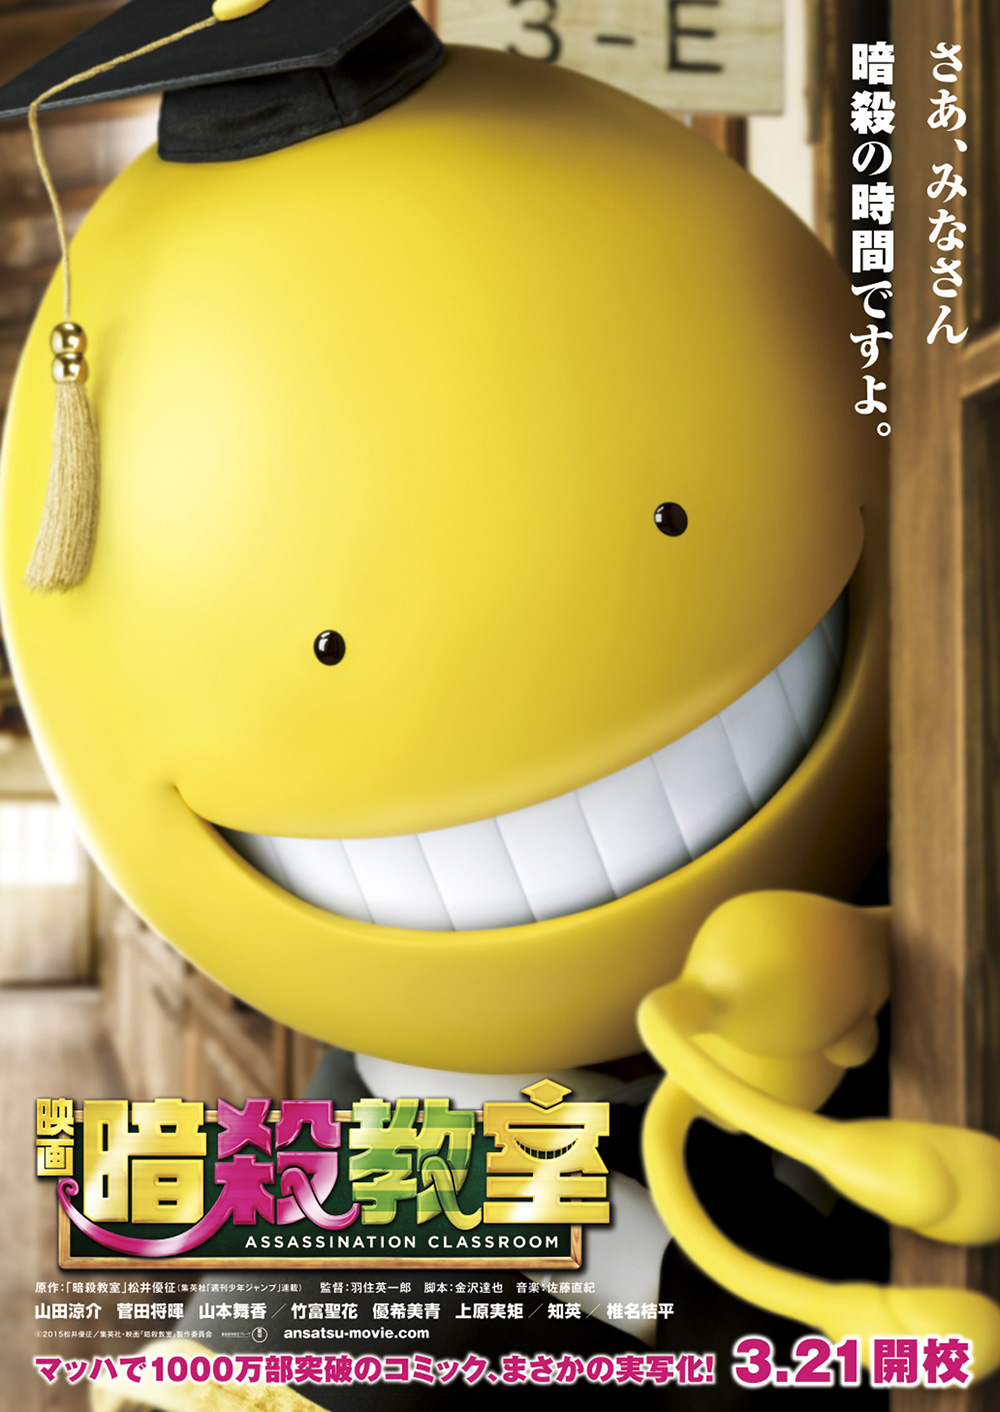 Assassination-Classroom-Live-Action-Poster